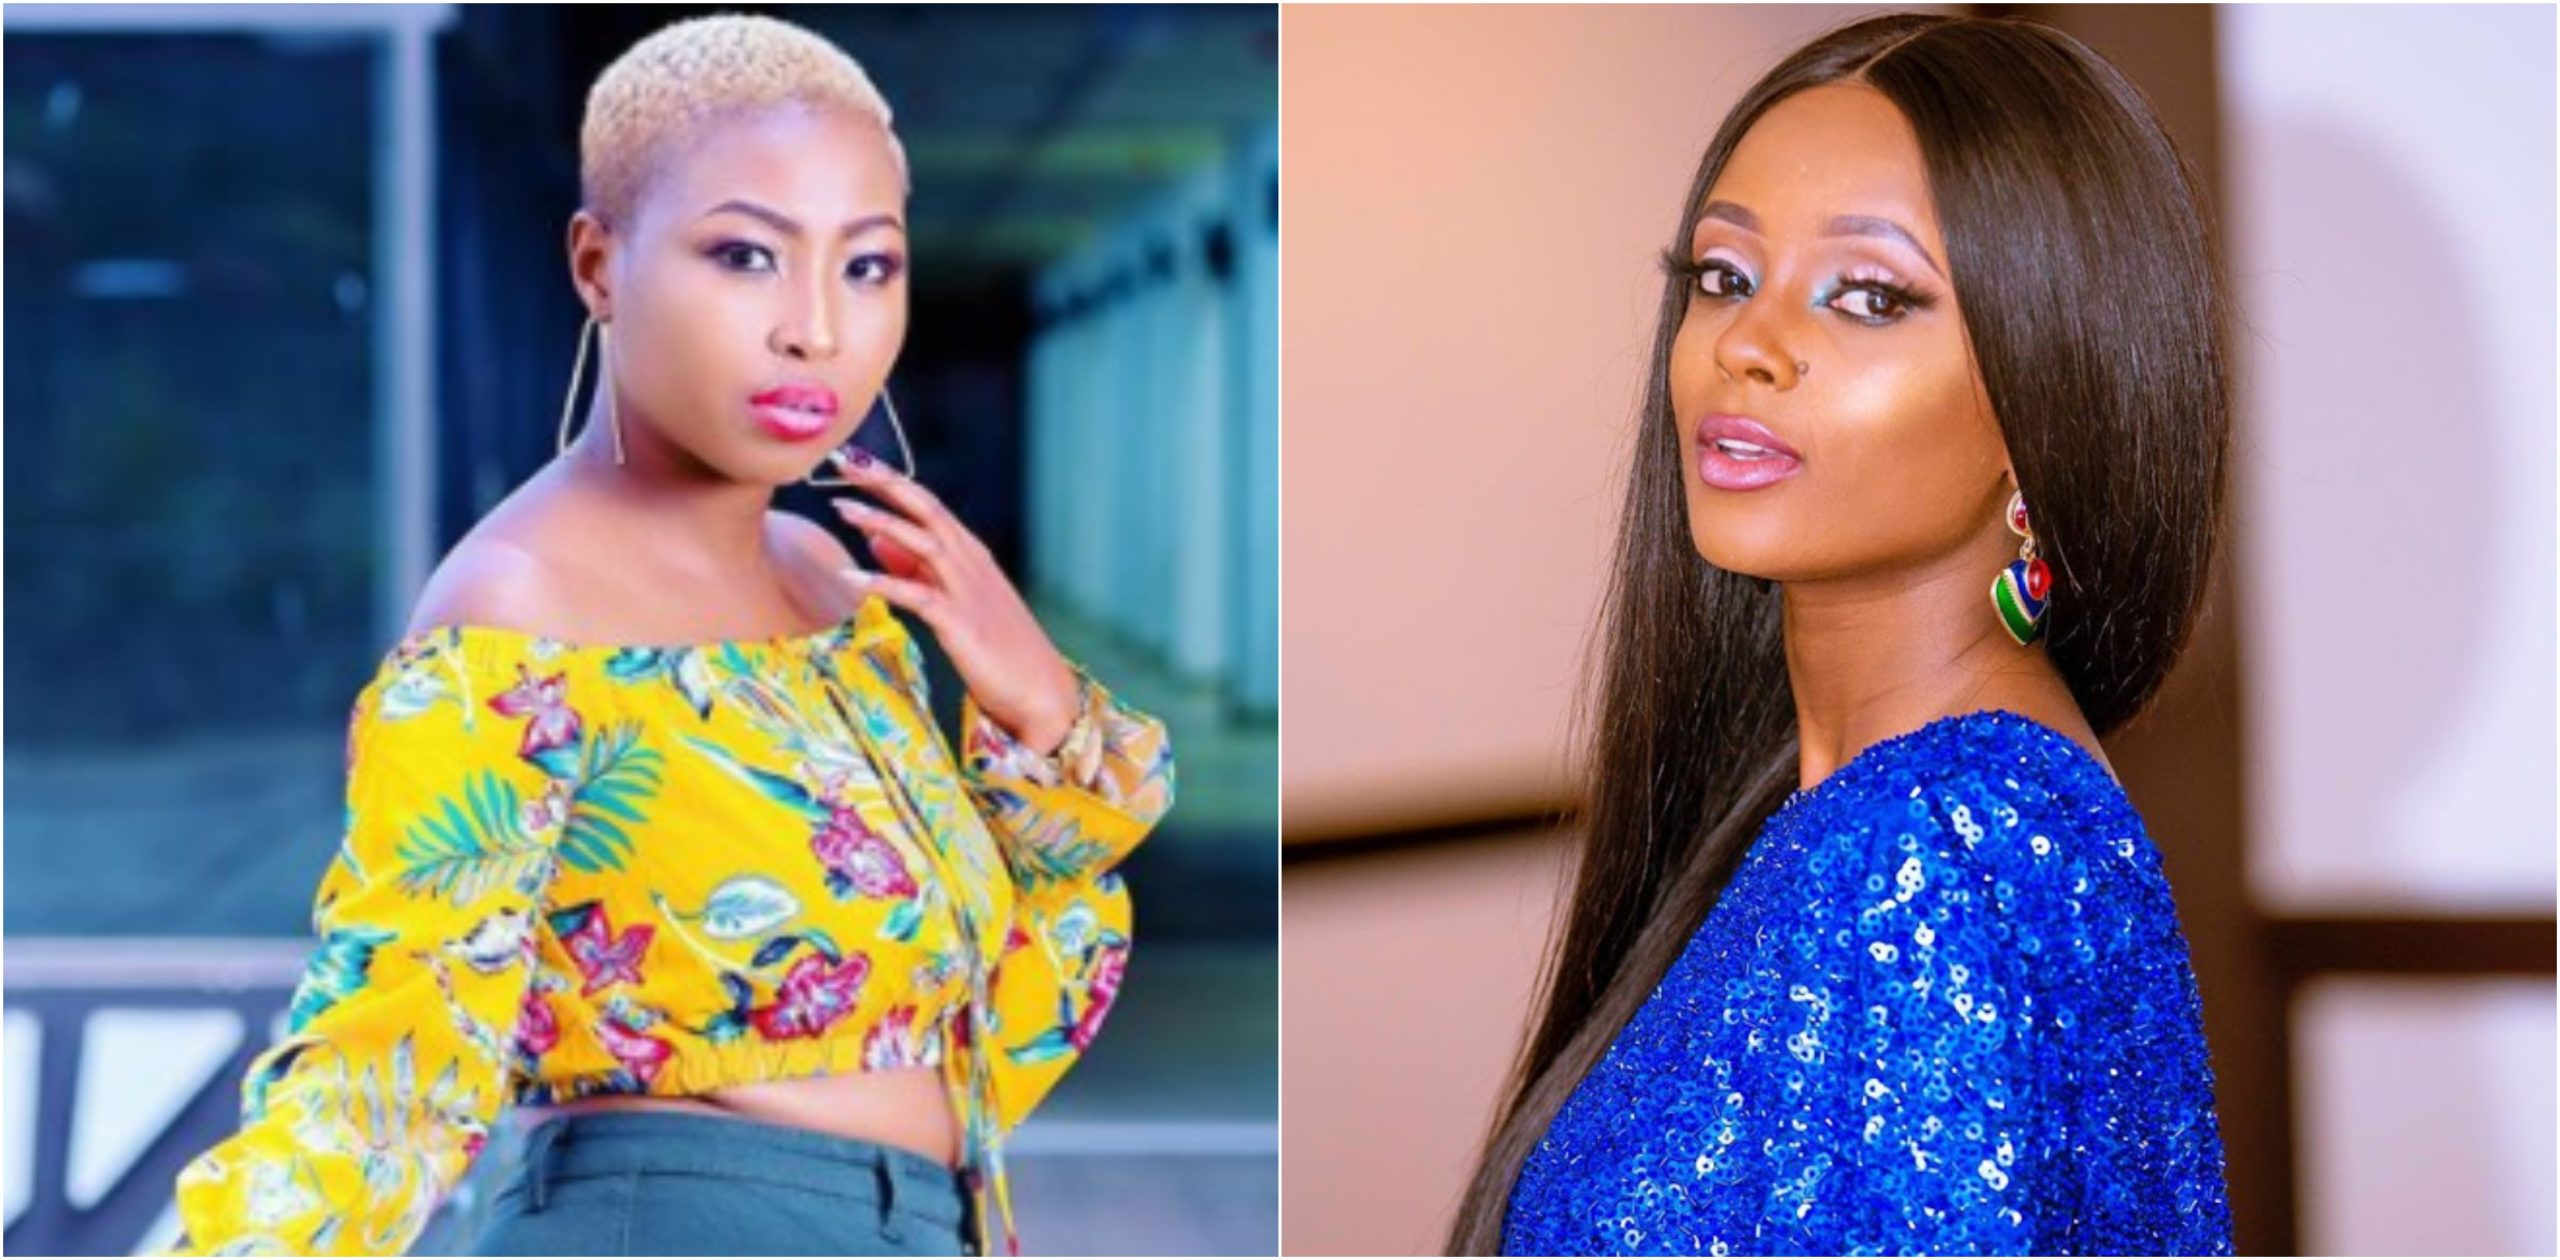 Singer Vivianne confirms music industry is 'demonic' barely days after Vanessa Mdee's claims